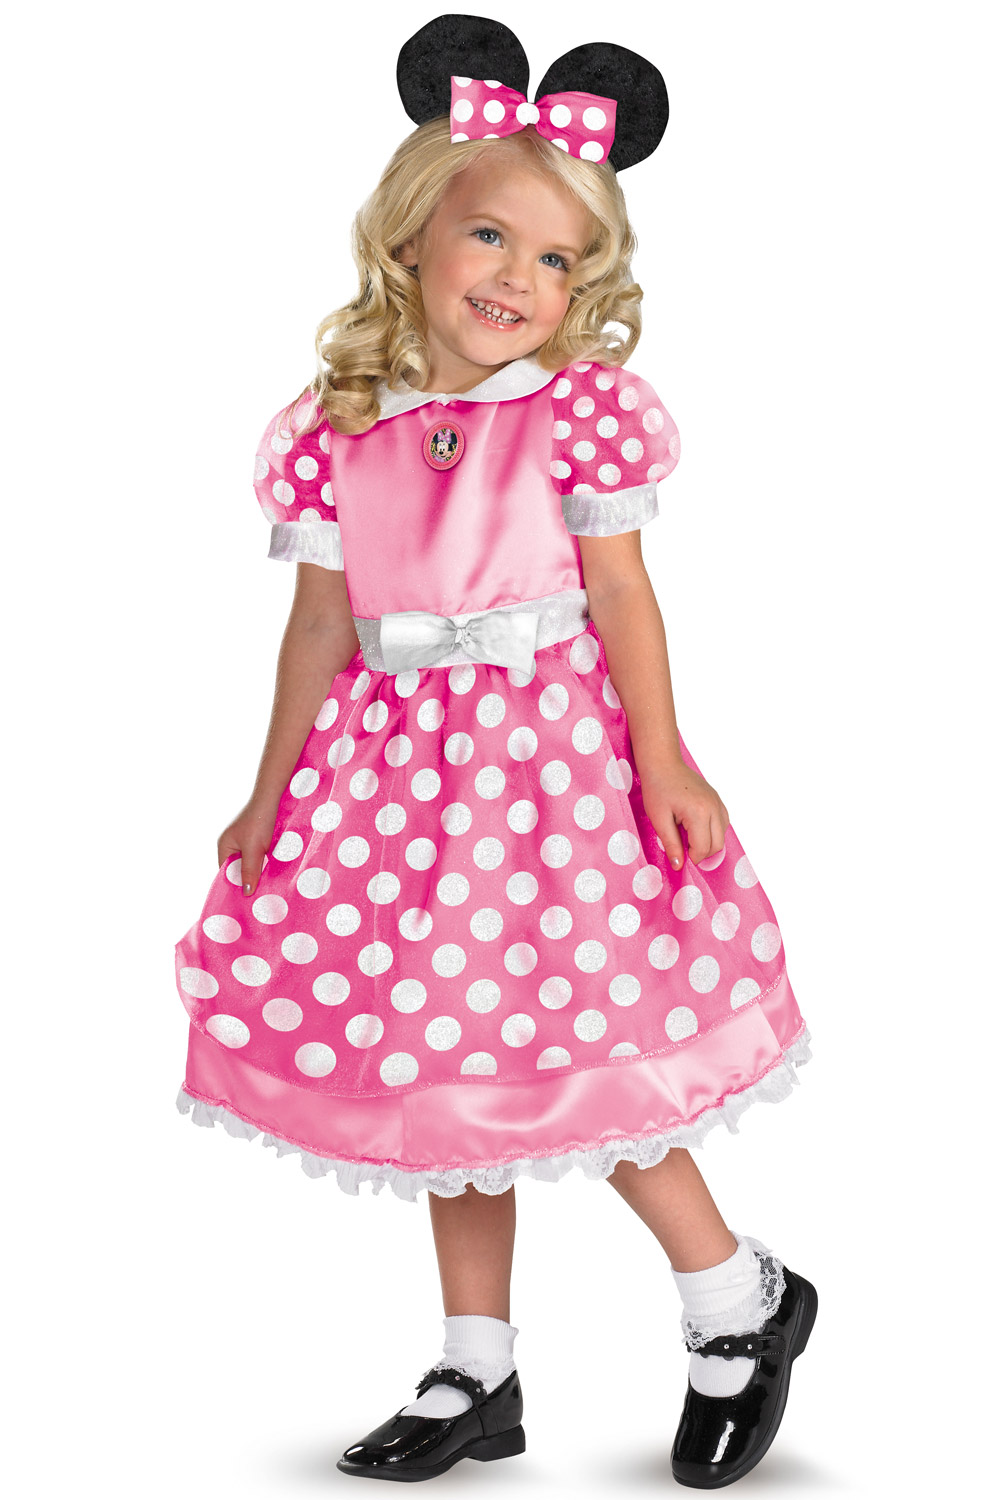 brand new disney clubhouse minnie mouse toddler costume pink ebay. Black Bedroom Furniture Sets. Home Design Ideas